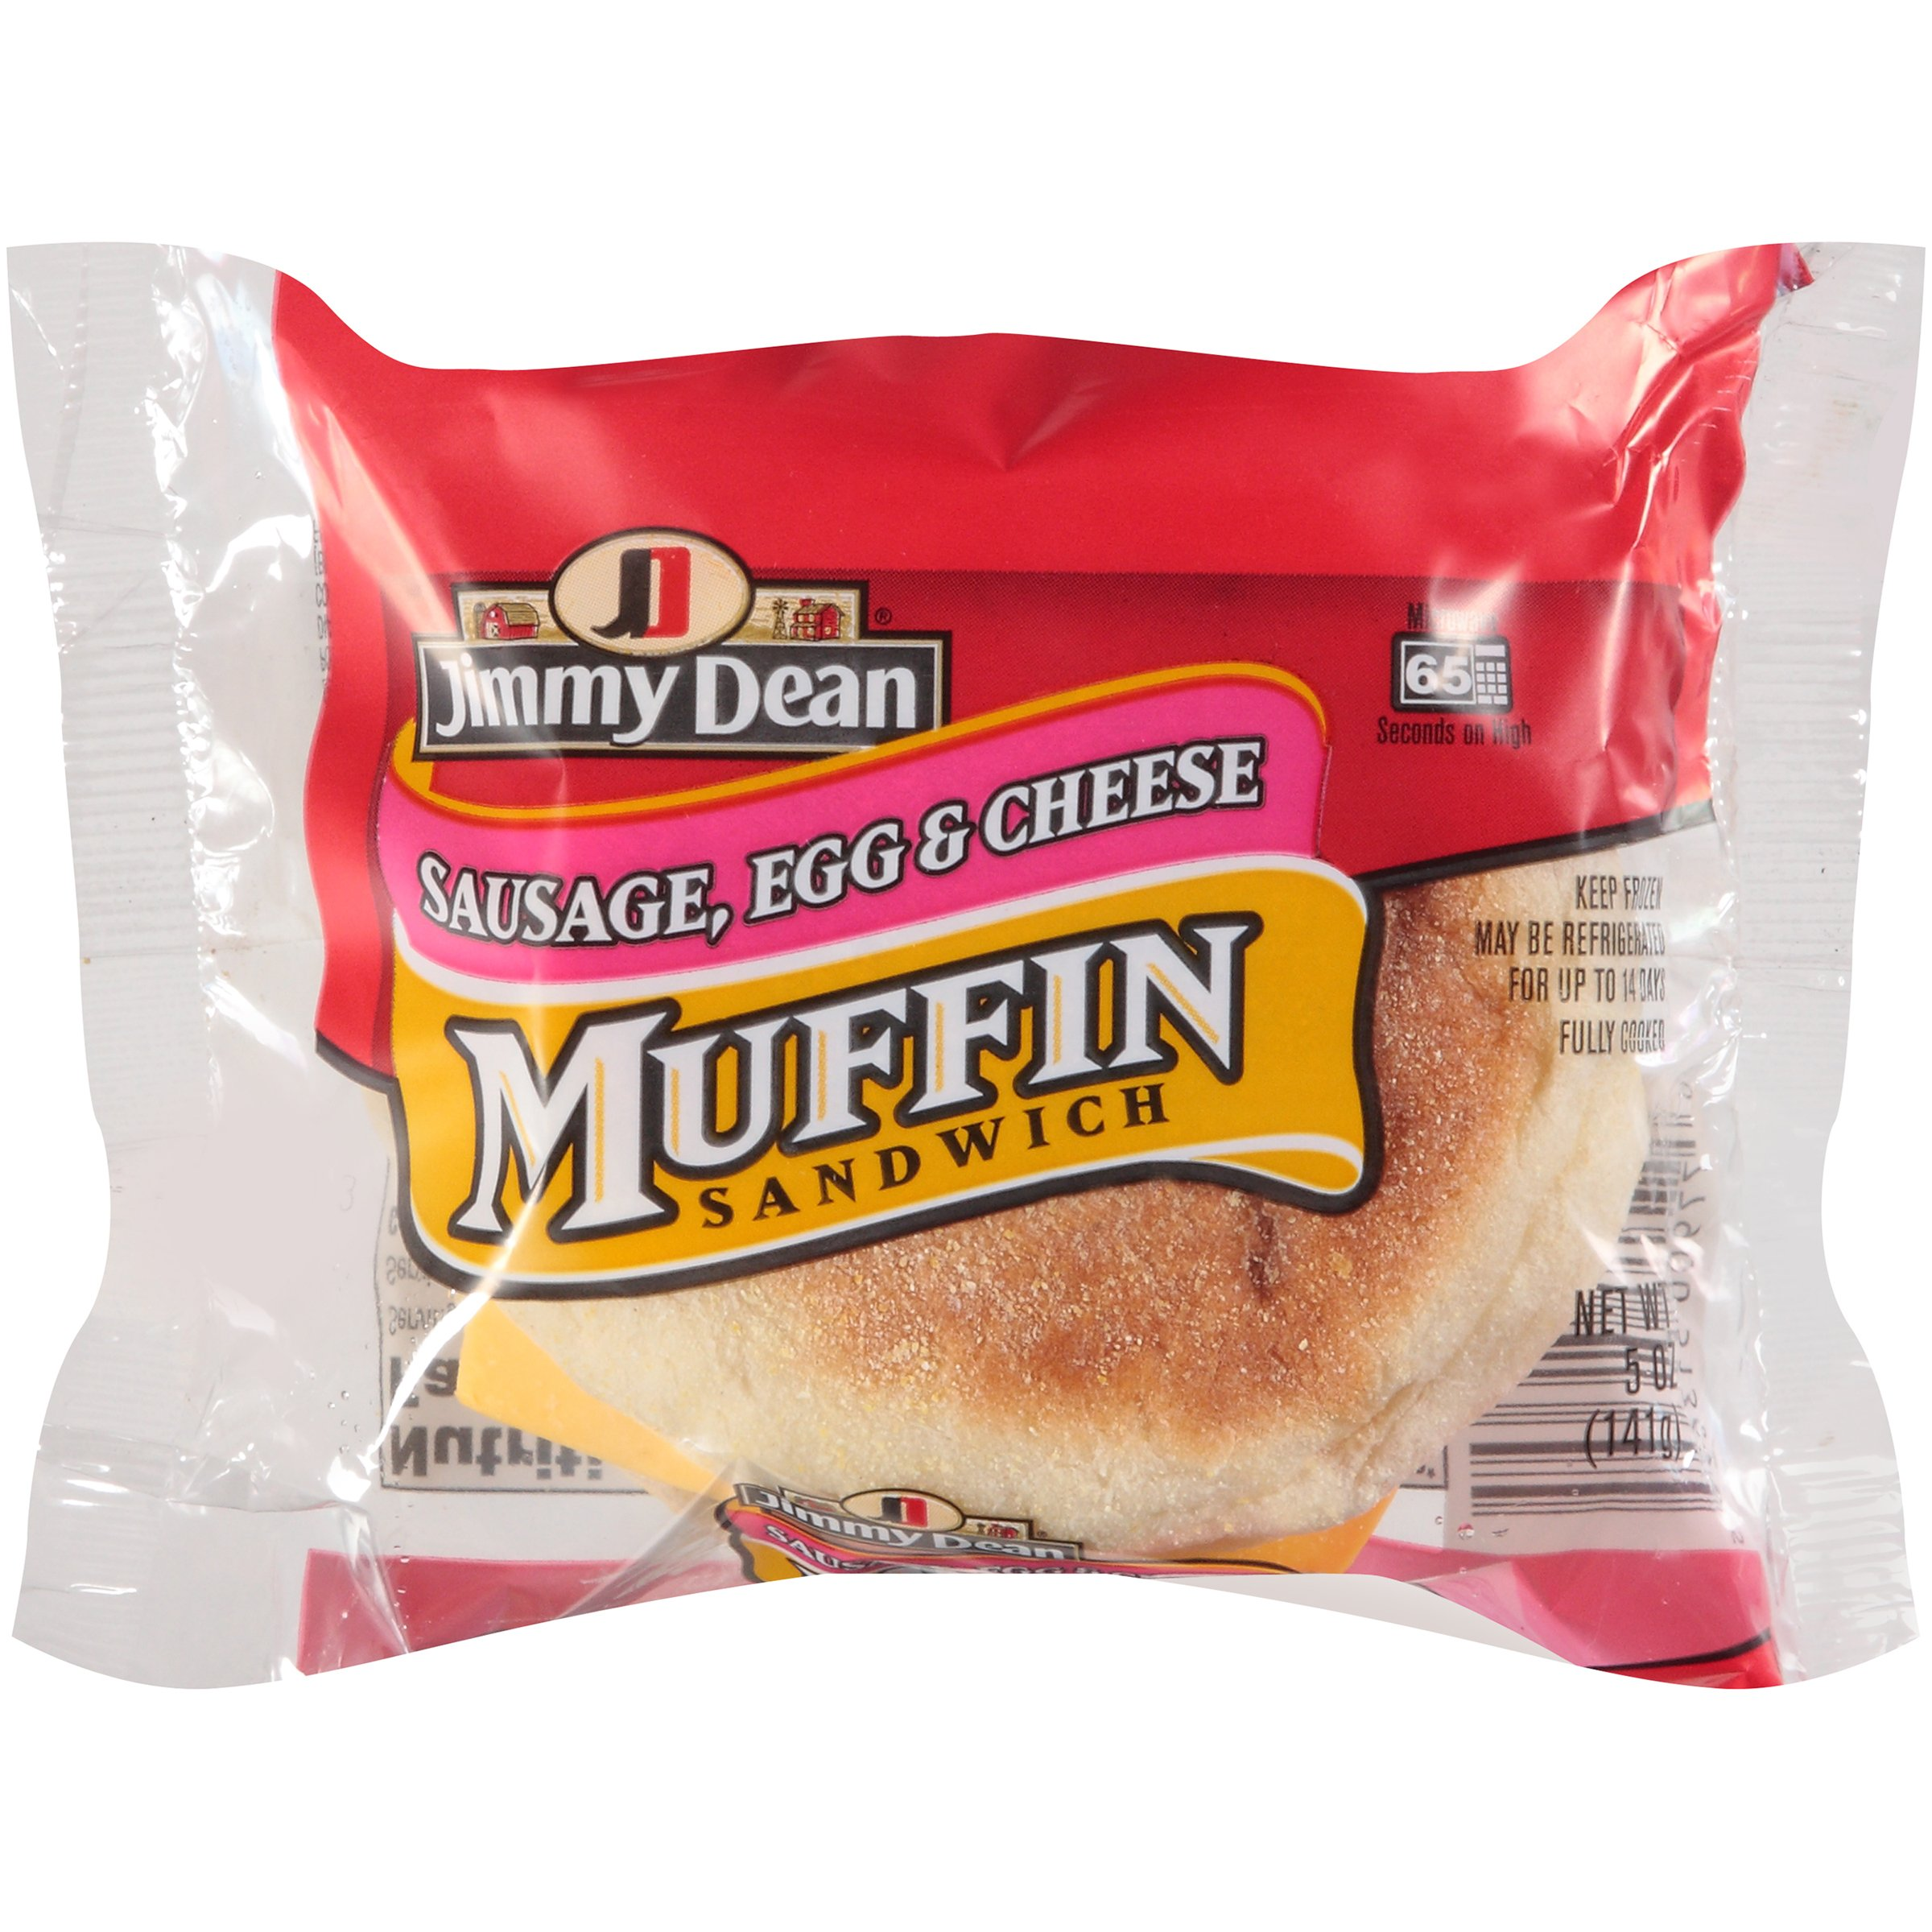 Jimmy Dean Muffin and Sausage, Egg with Cheese Sandwich, 5 Ounce - 12 per case.